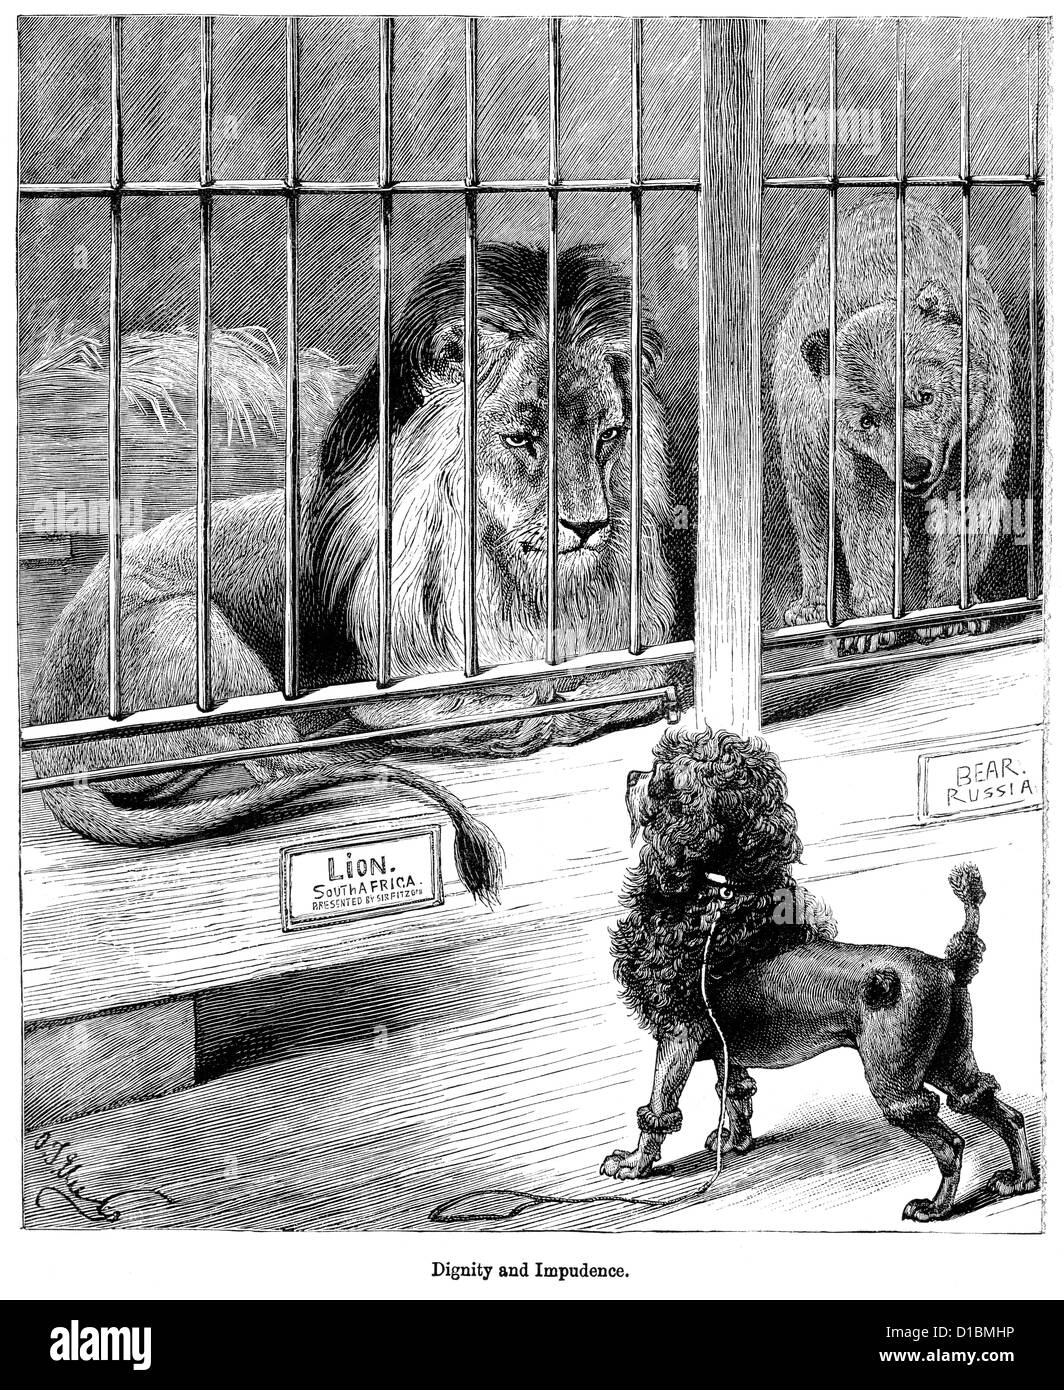 Victorian engraving of dog confronting a caged lion at the zoo, 1897 - Stock Image